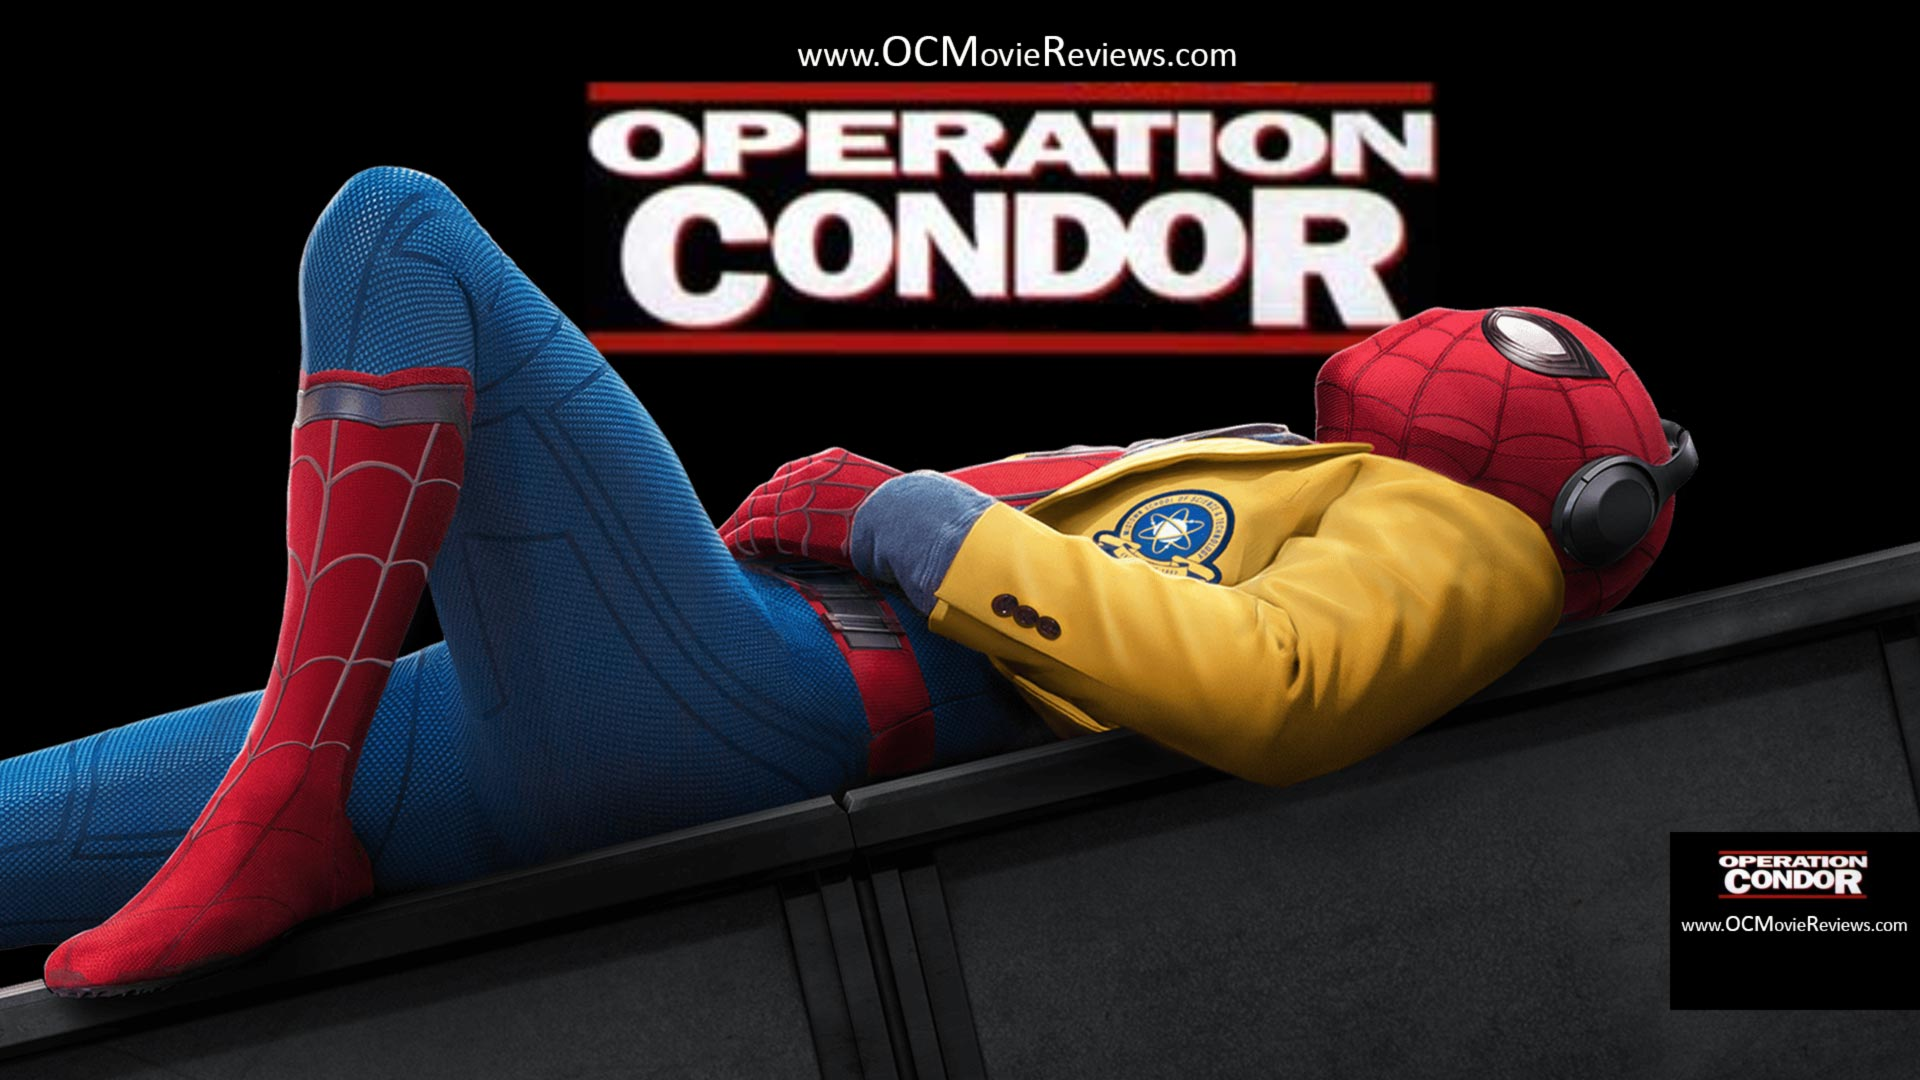 Spider-Man Homecoming Review - OC Movie Reviews - Movie Reviews, Movie News, Documentary Reviews, Short Films, Short Film Reviews, Trailers, Movie Trailers, Interviews, film reviews, film news, hollywood, indie films, documentaries